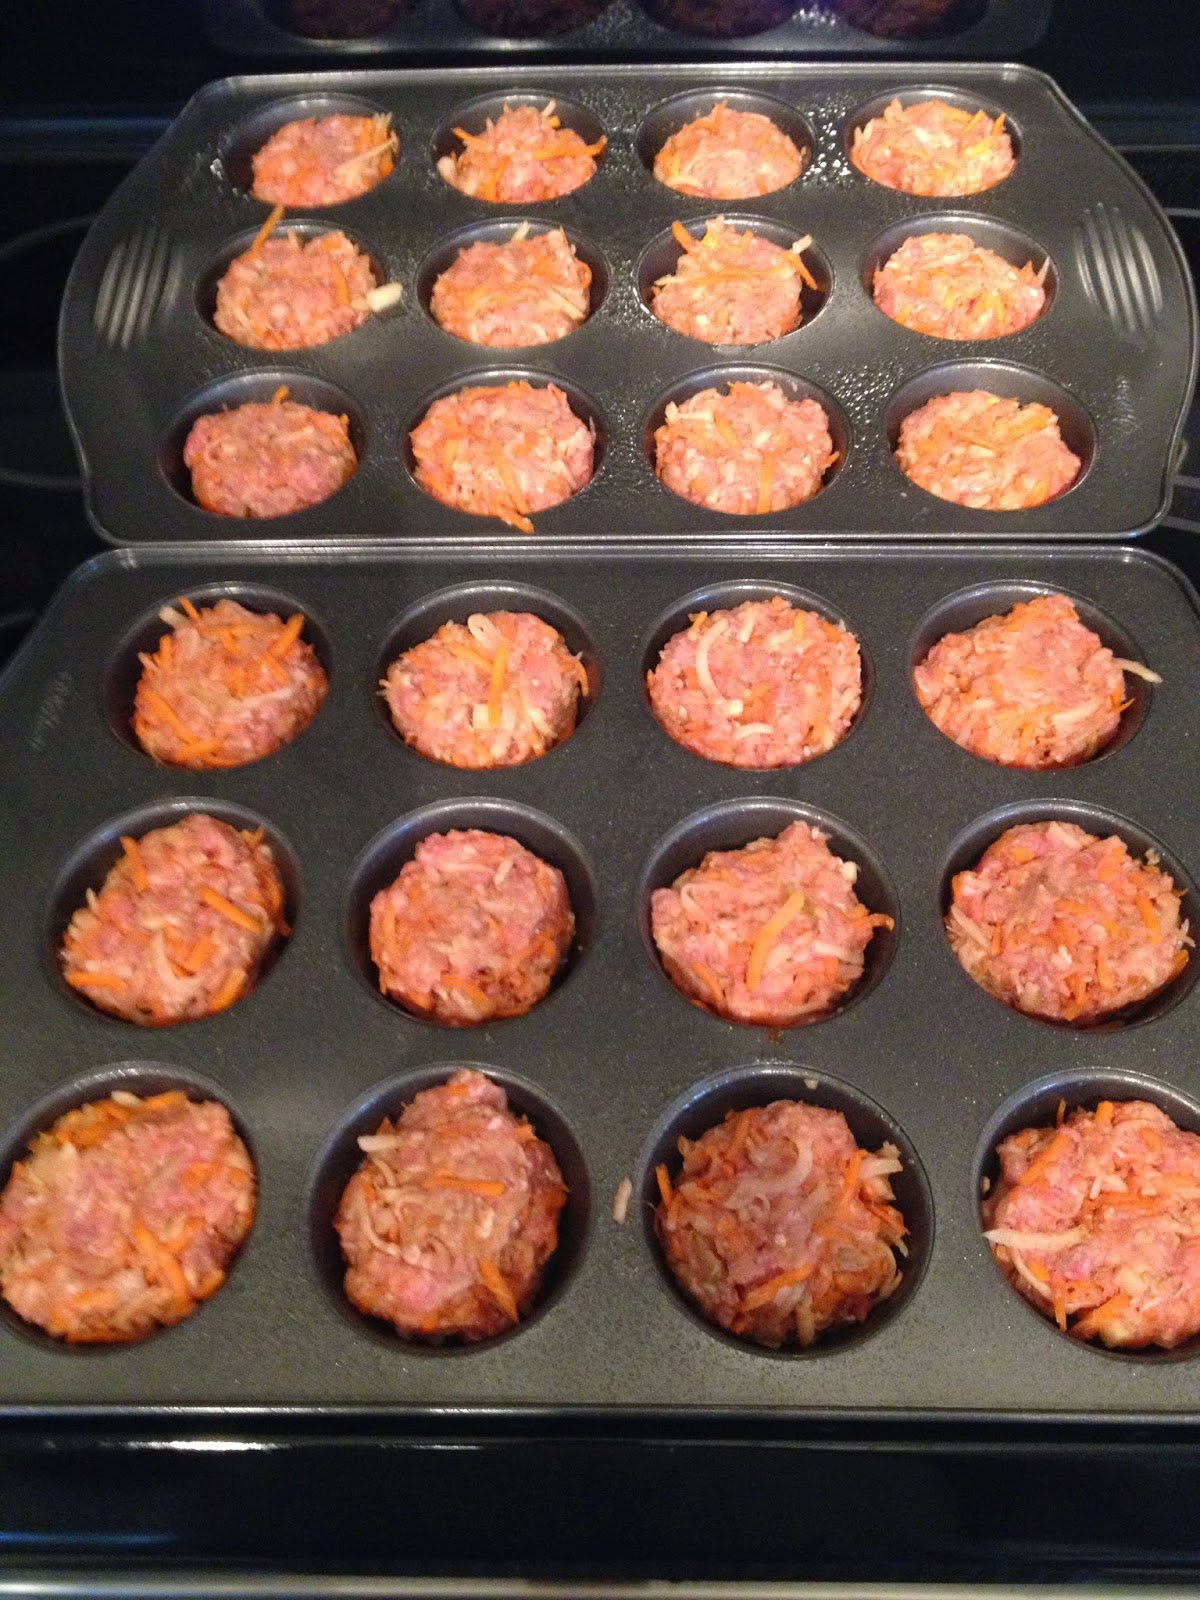 Milo's homemade dog food - meatloaf patties